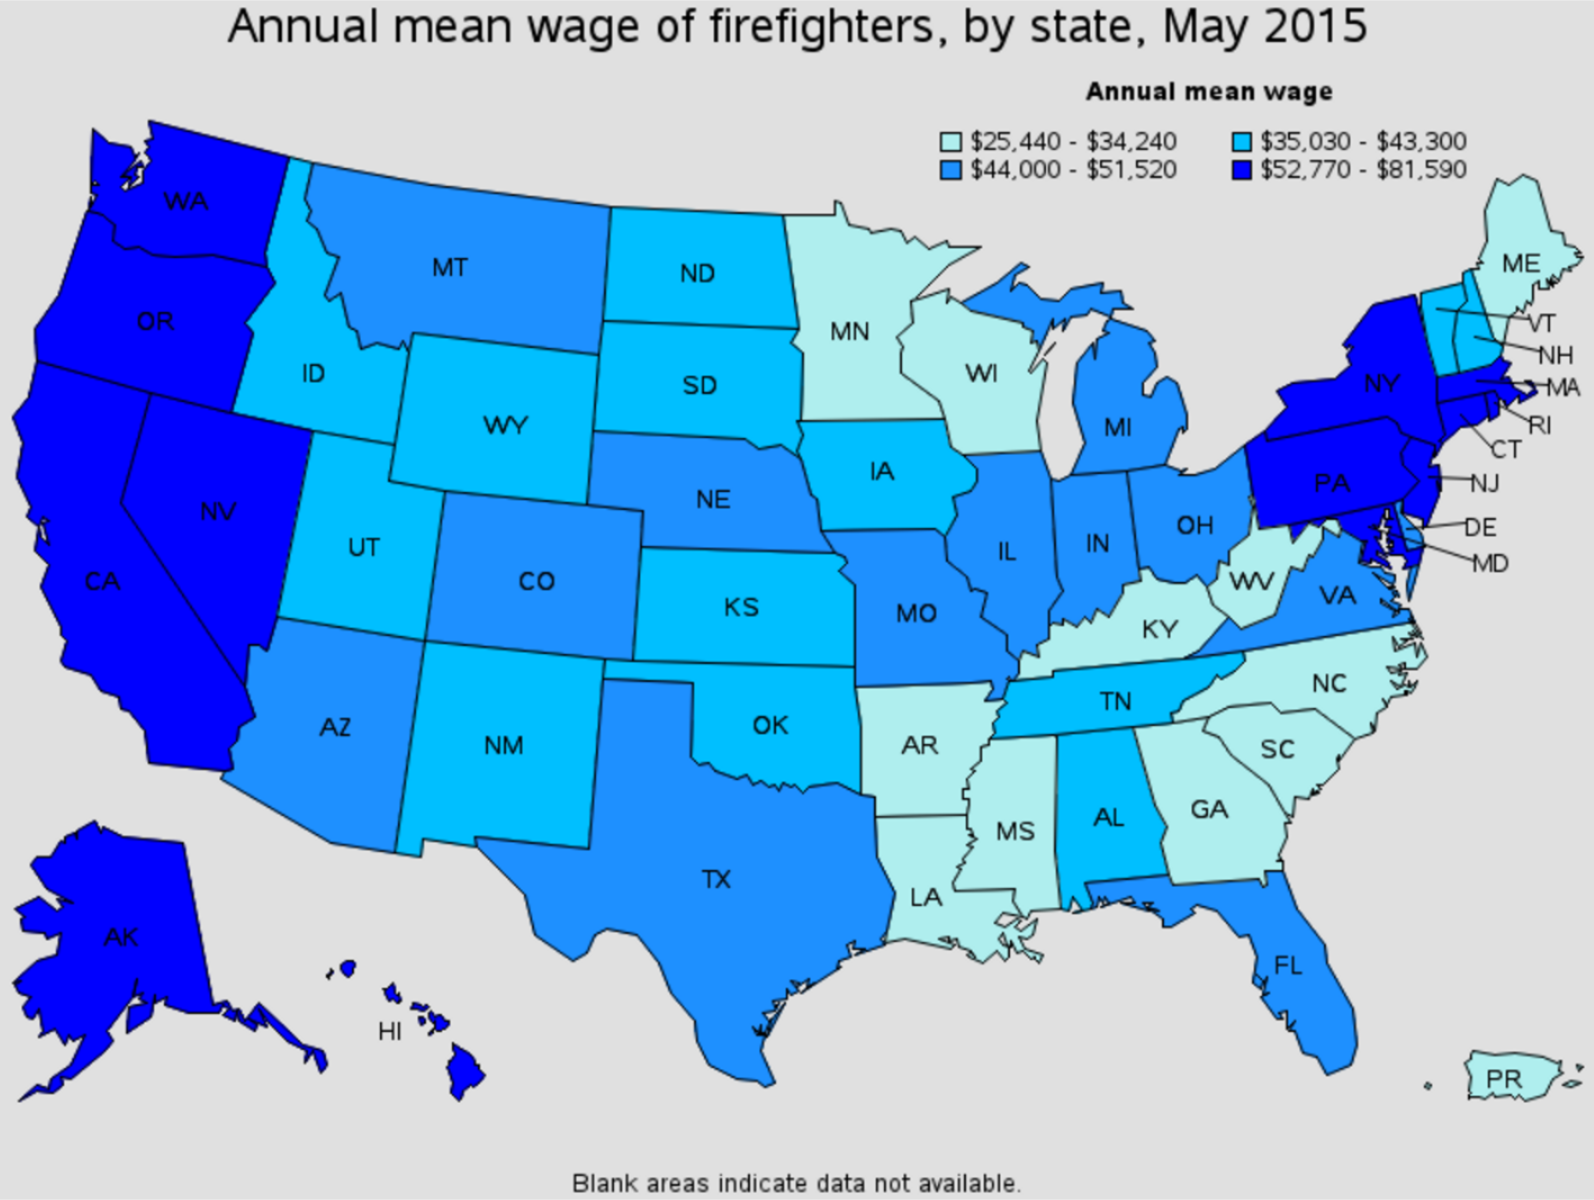 firefighter average salary by state Los Angeles California